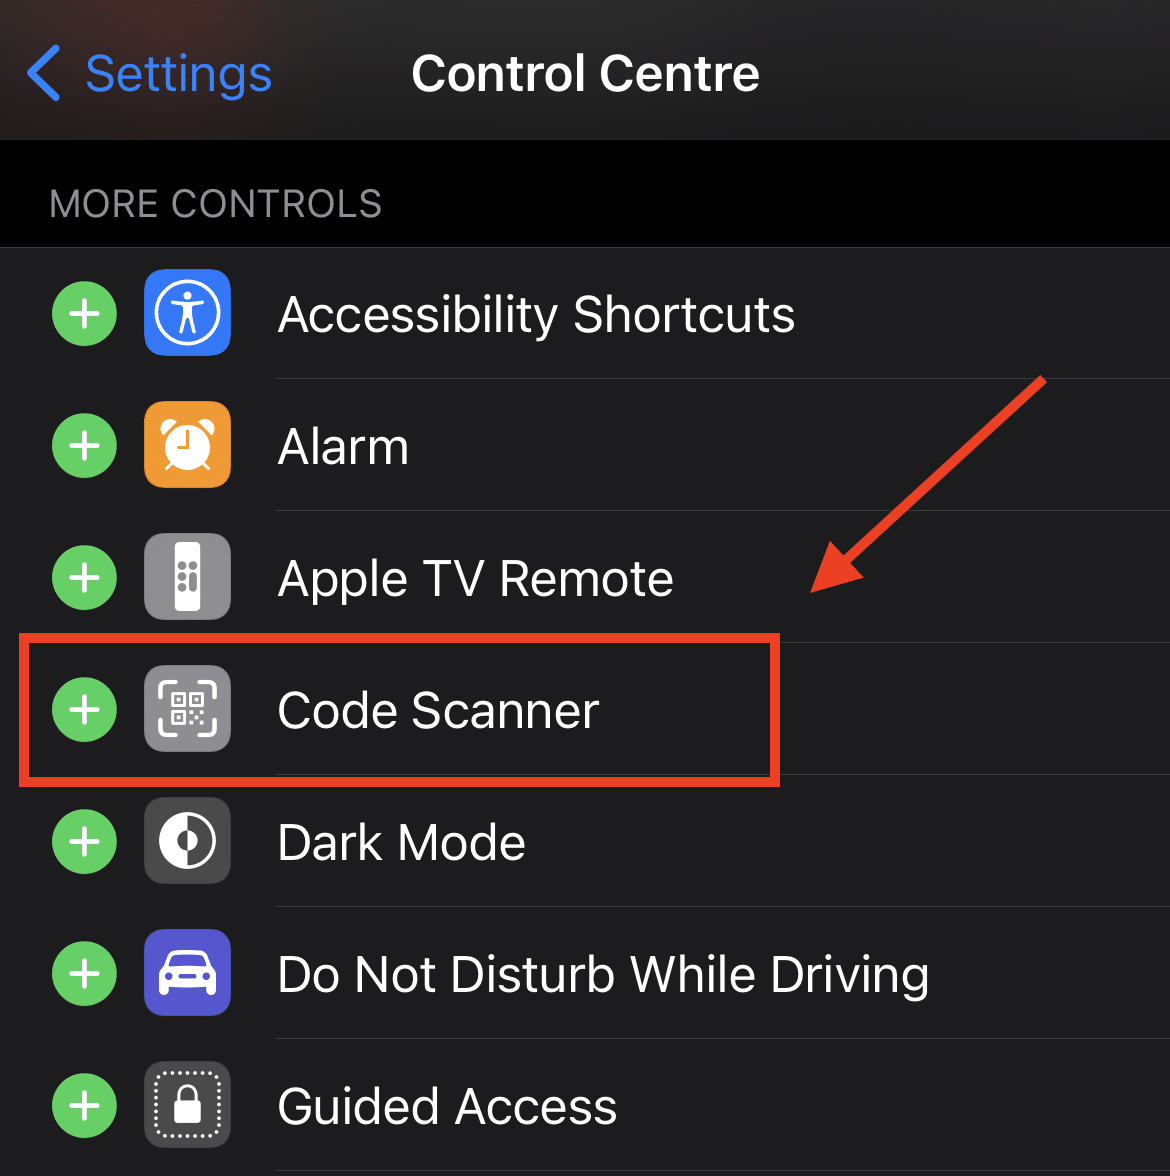 Code Scanner option in Control Center settings on iPhone